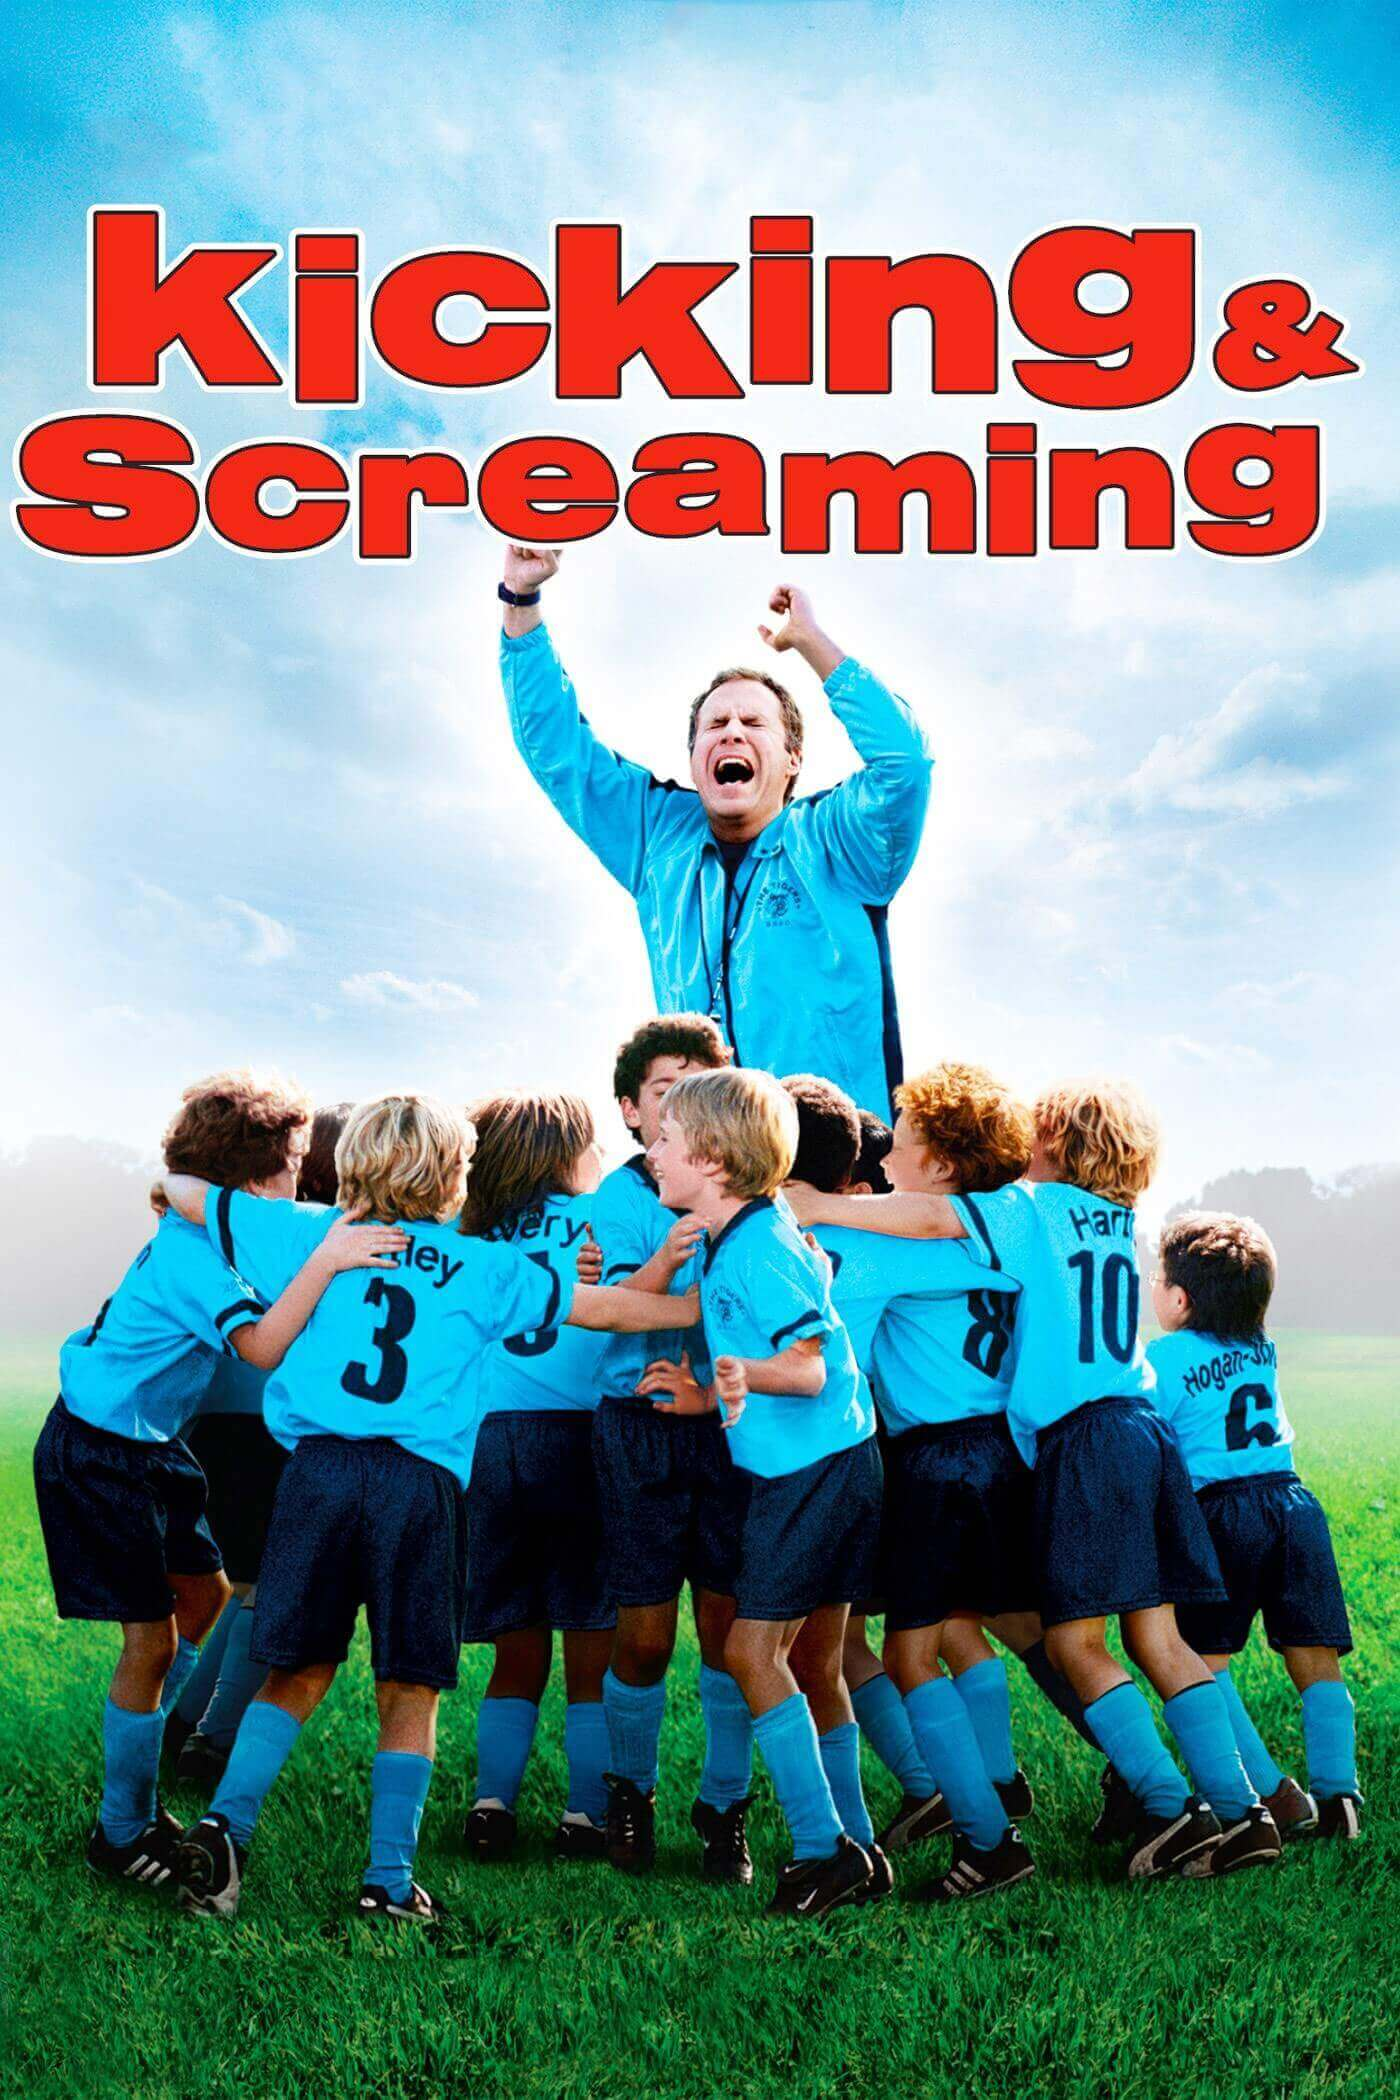 Kicking and Screaming cover featuring Will Ferrell and the Tigers soccer team